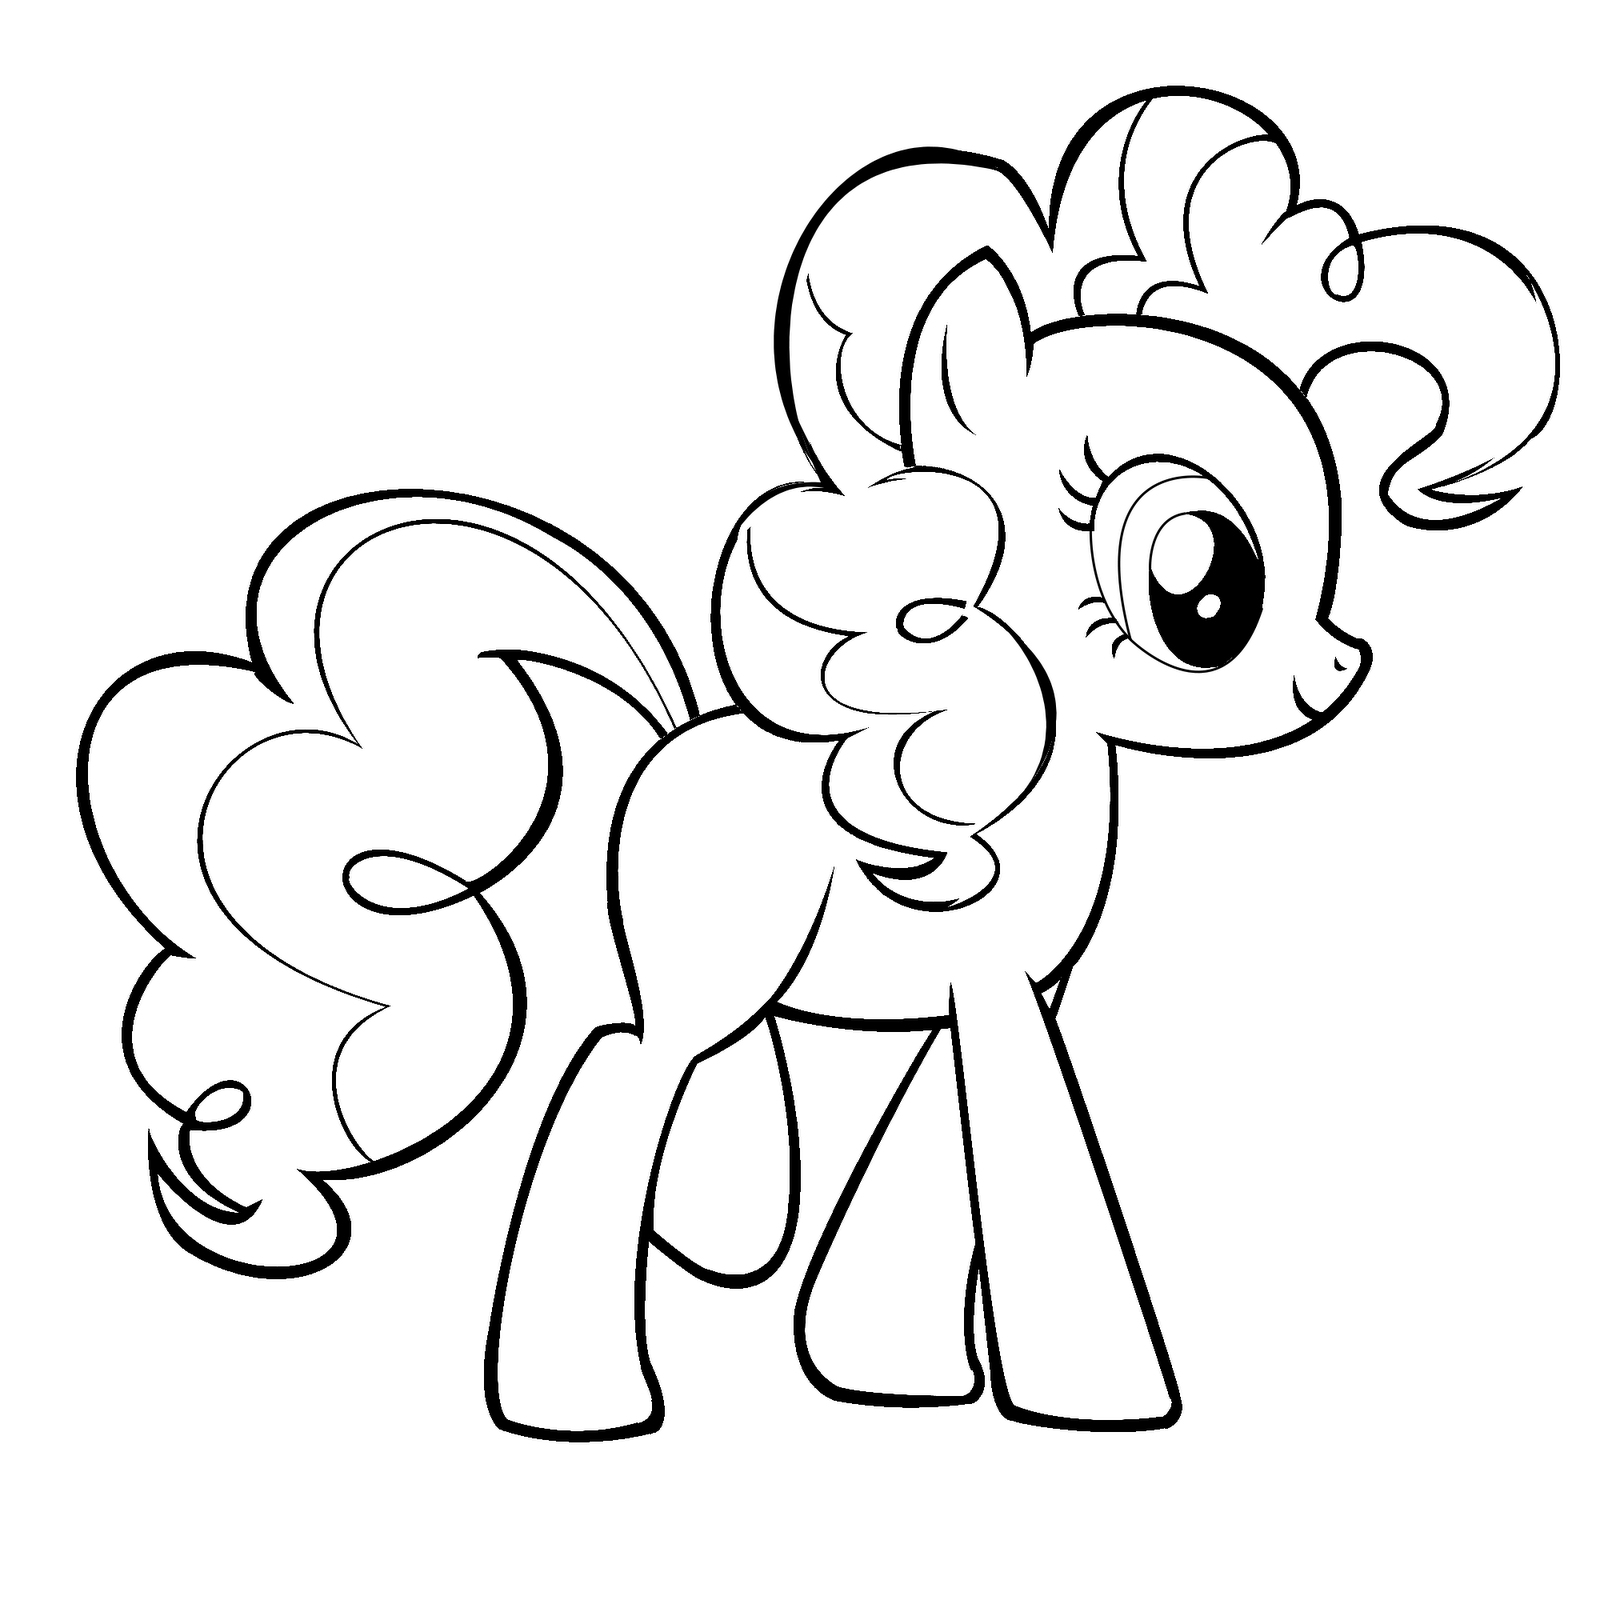 pinkie pie coloring pages pinkie pie pony coloring pages for girls to print for free pinkie pages coloring pie